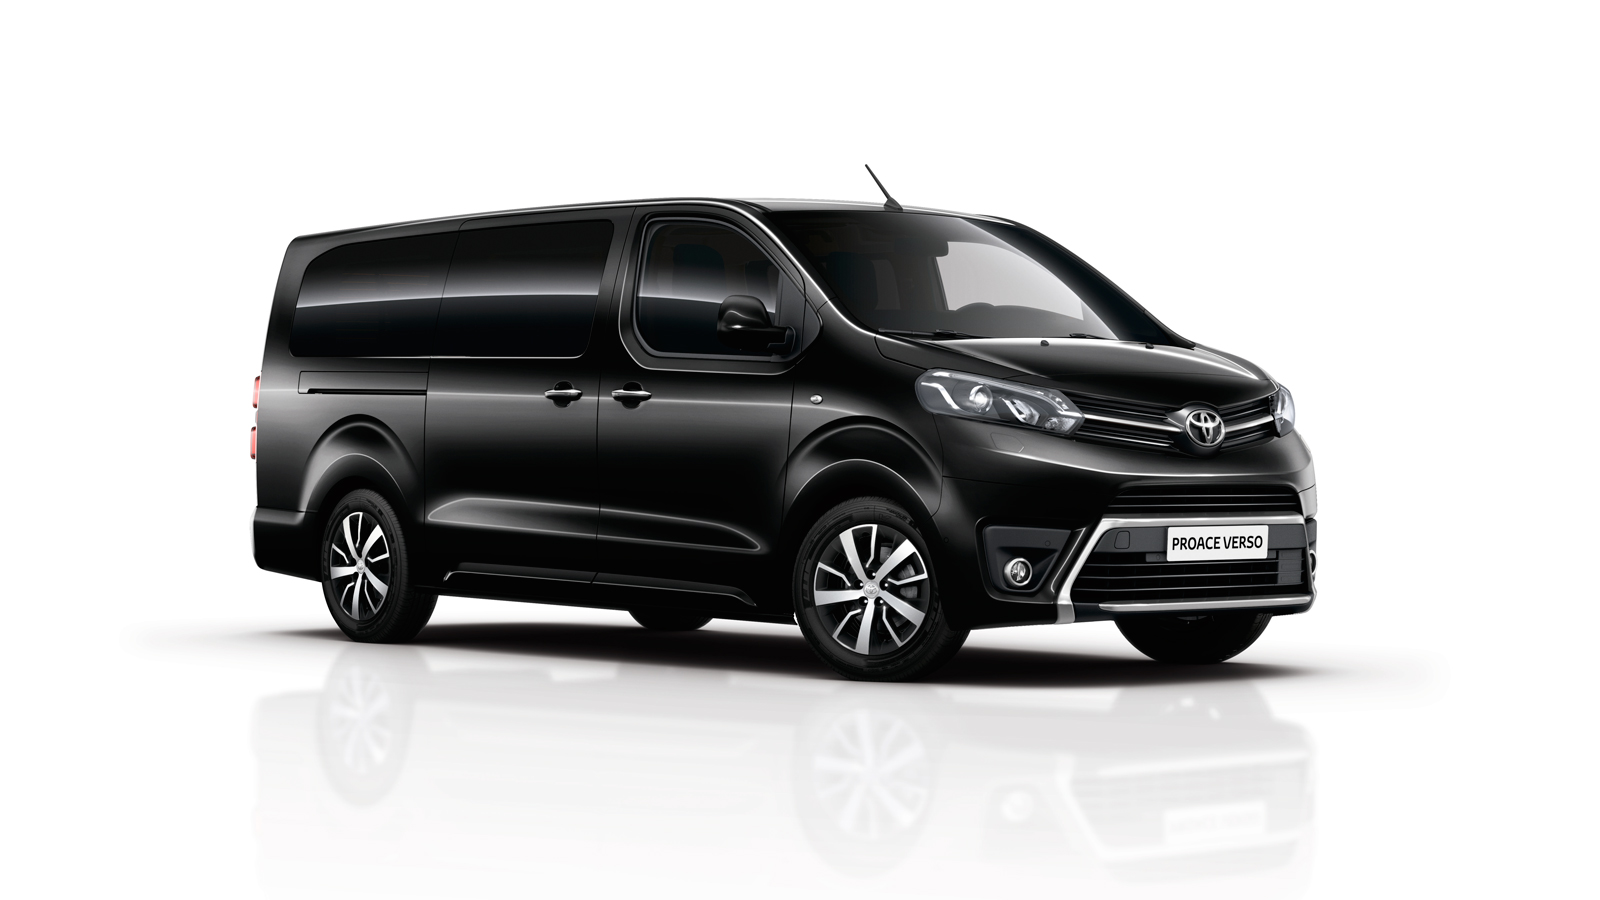 toyota proace verso van garage du vernay jdf bill. Black Bedroom Furniture Sets. Home Design Ideas